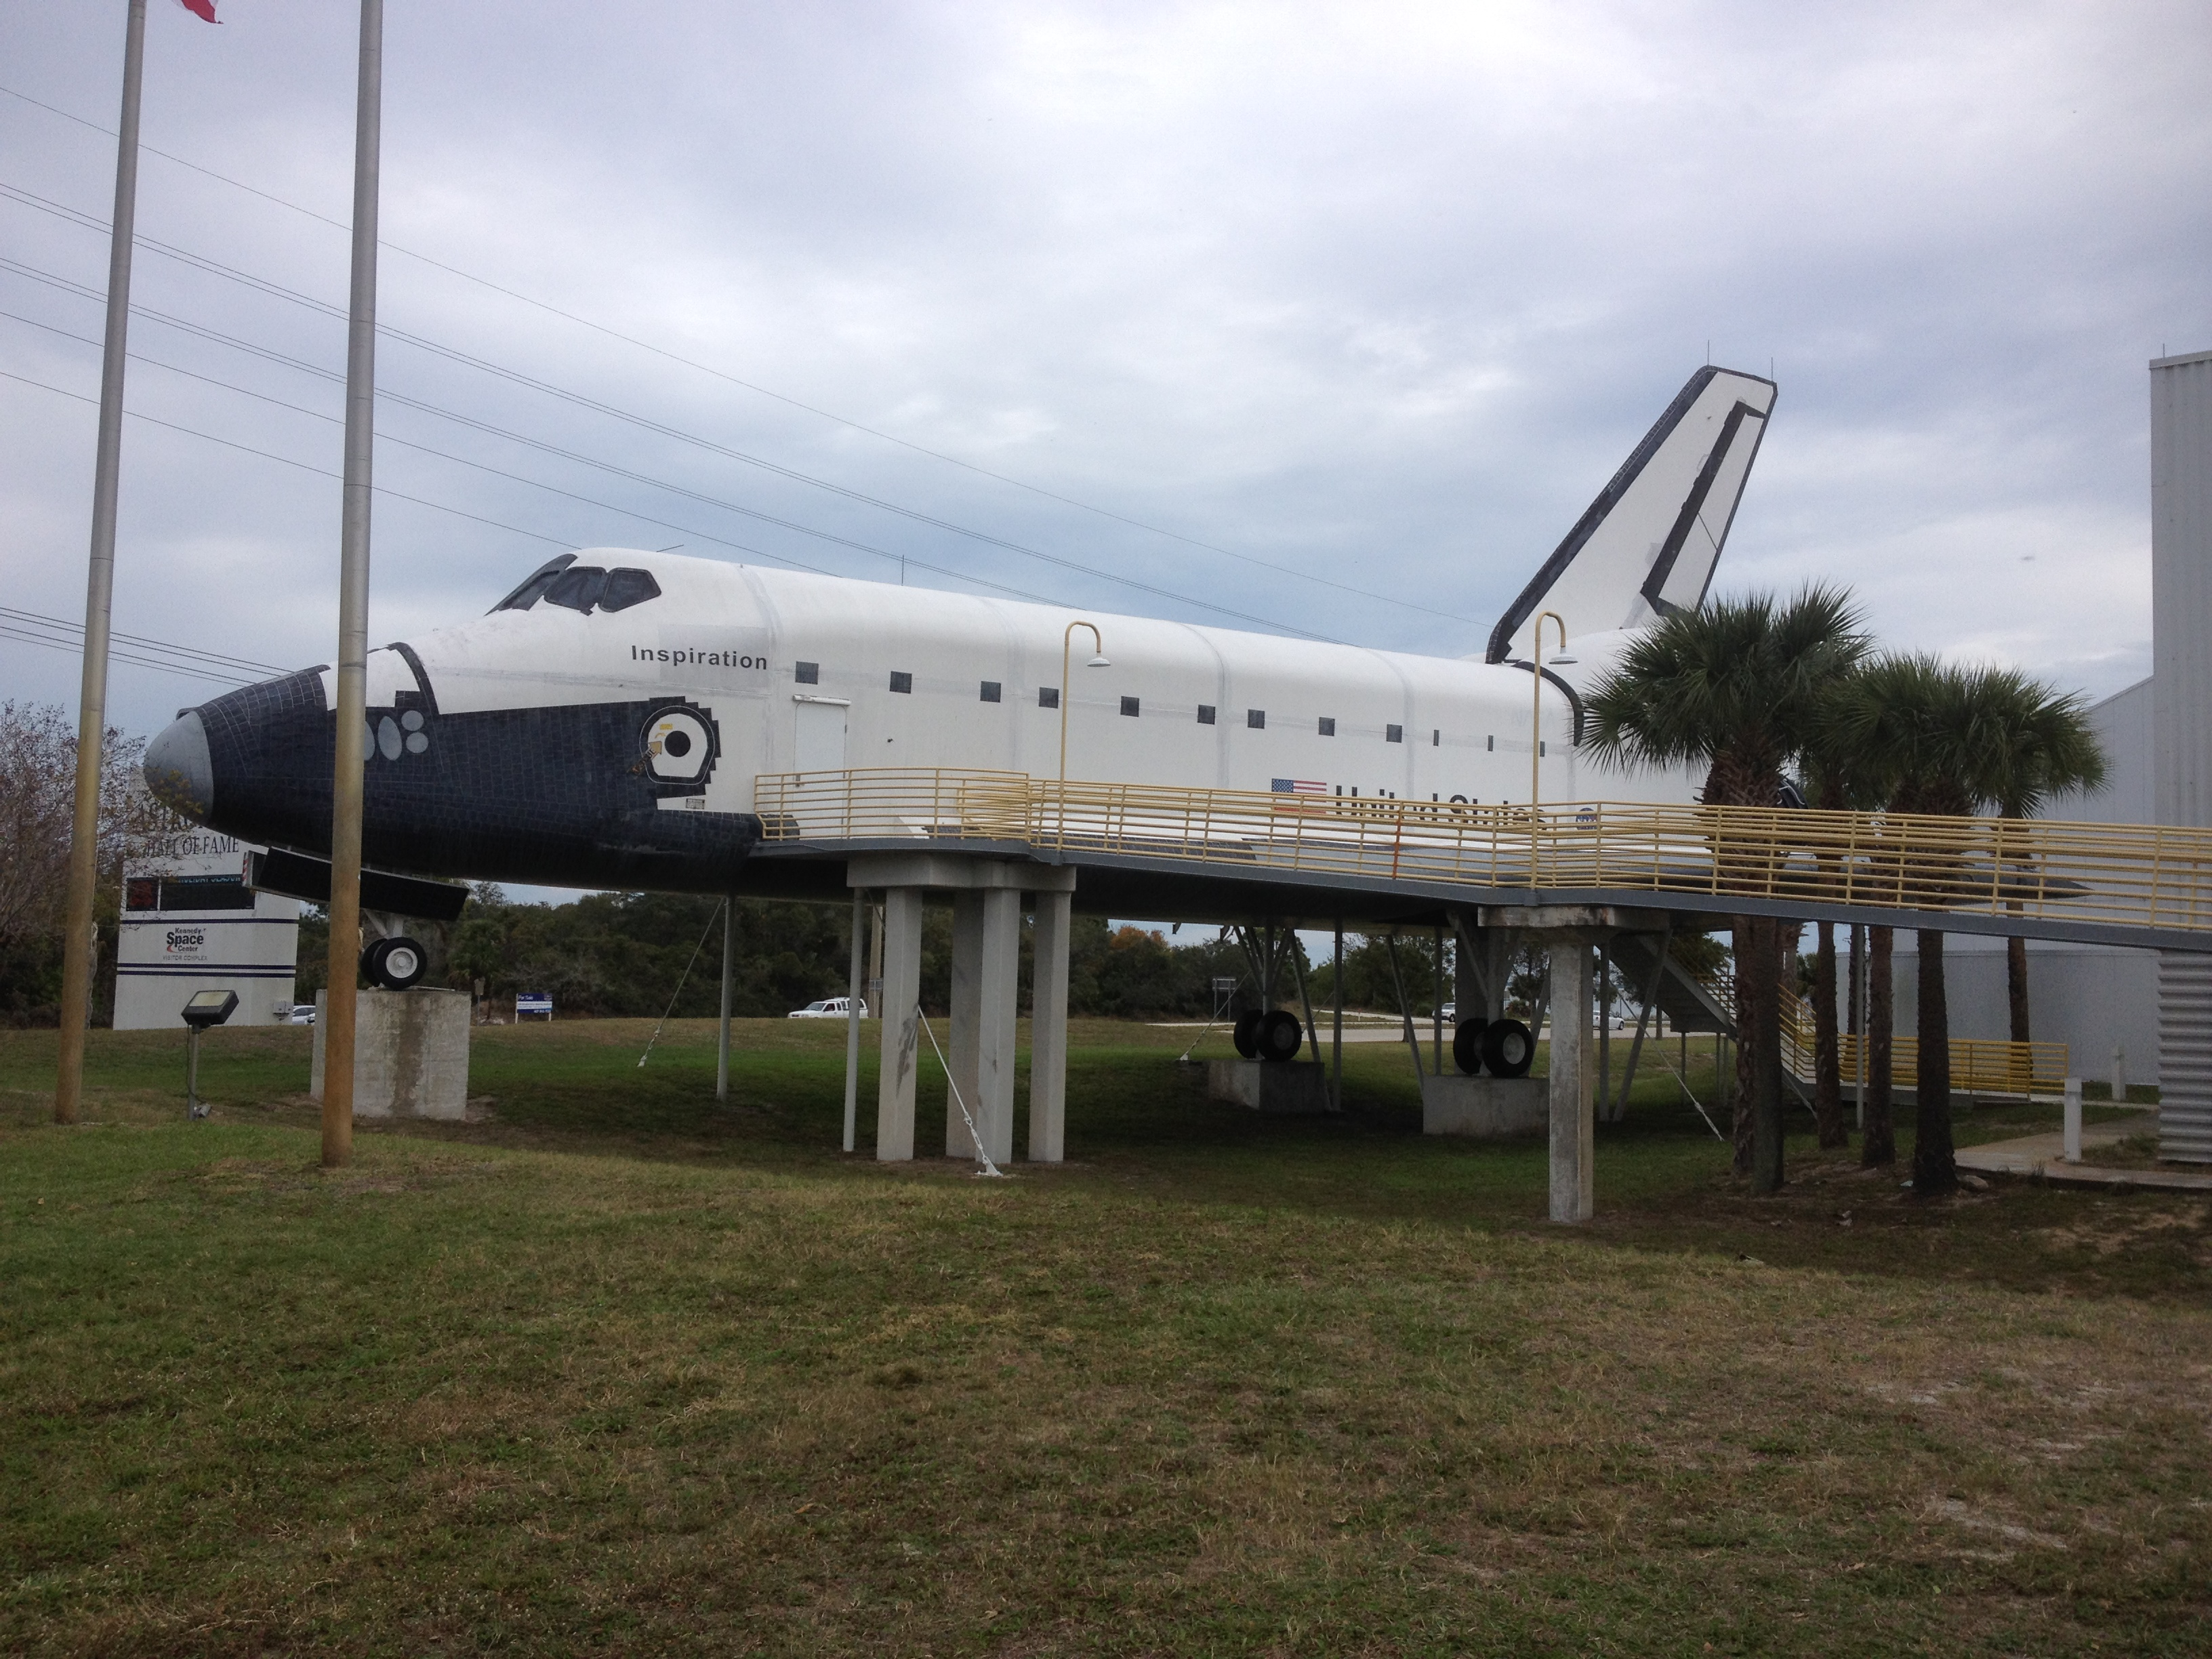 space shuttle inspiration - photo #15